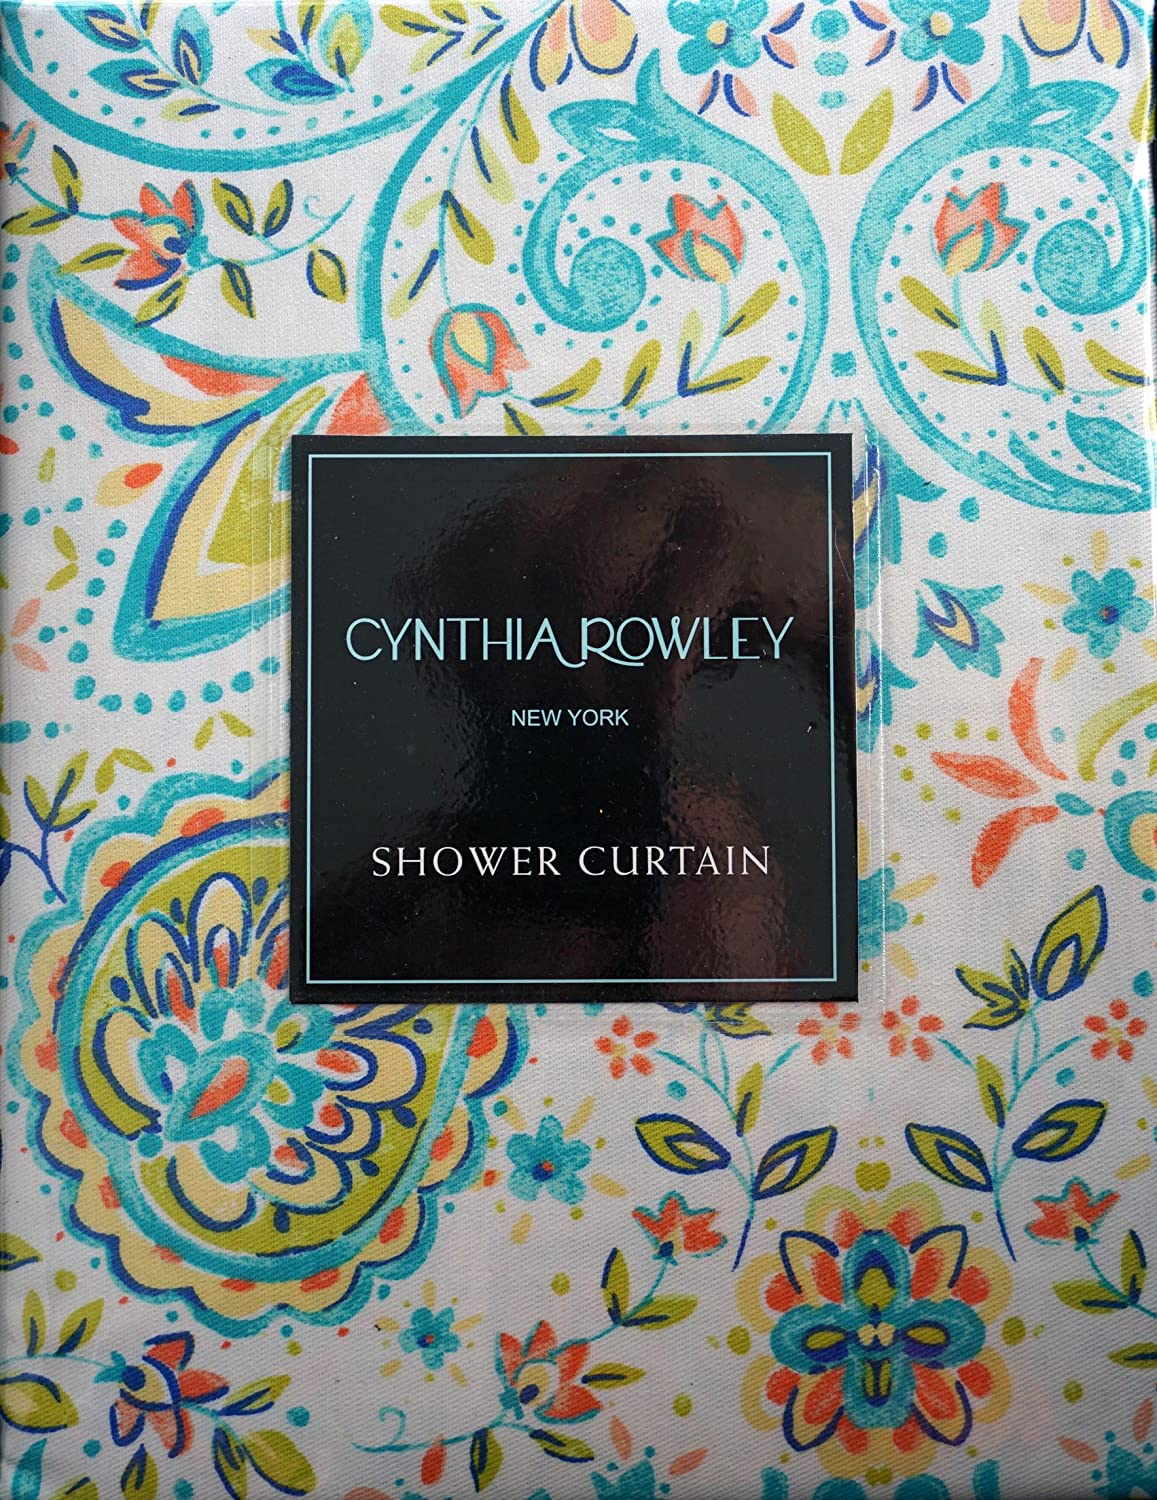 Cynthia rowley medallion shower curtain - Amazon Com Cynthia Rowley Fabric Shower Curtain Orange Turquoise Yellow Medallions Quincy Home Kitchen